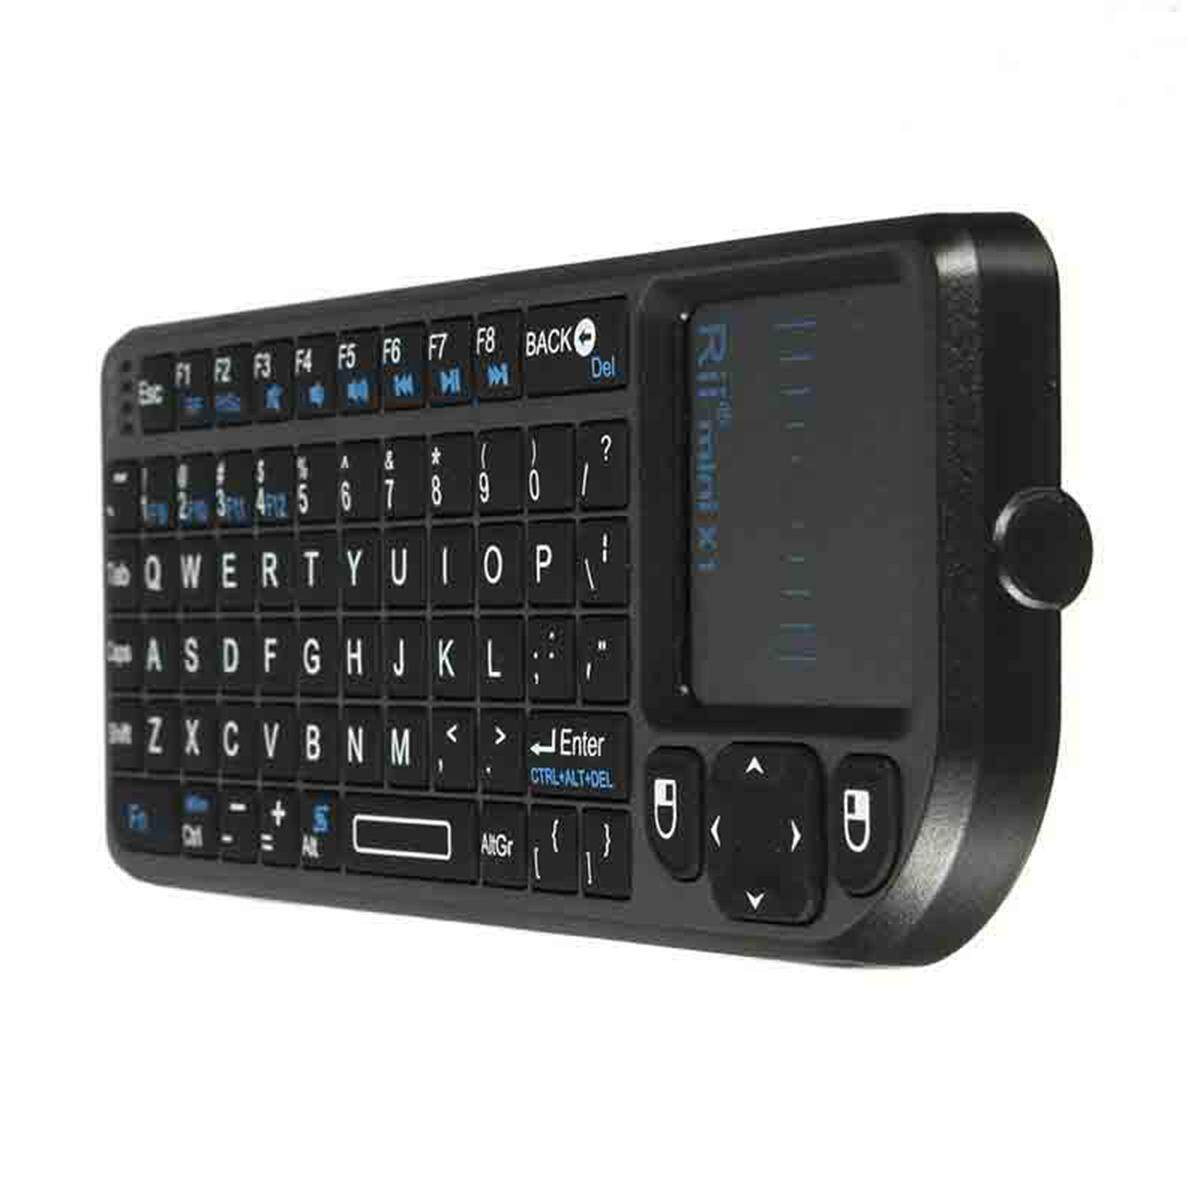 4303f685e27 Latest Rii Mice & Keyboard Combos Products | Enjoy Huge Discounts ...